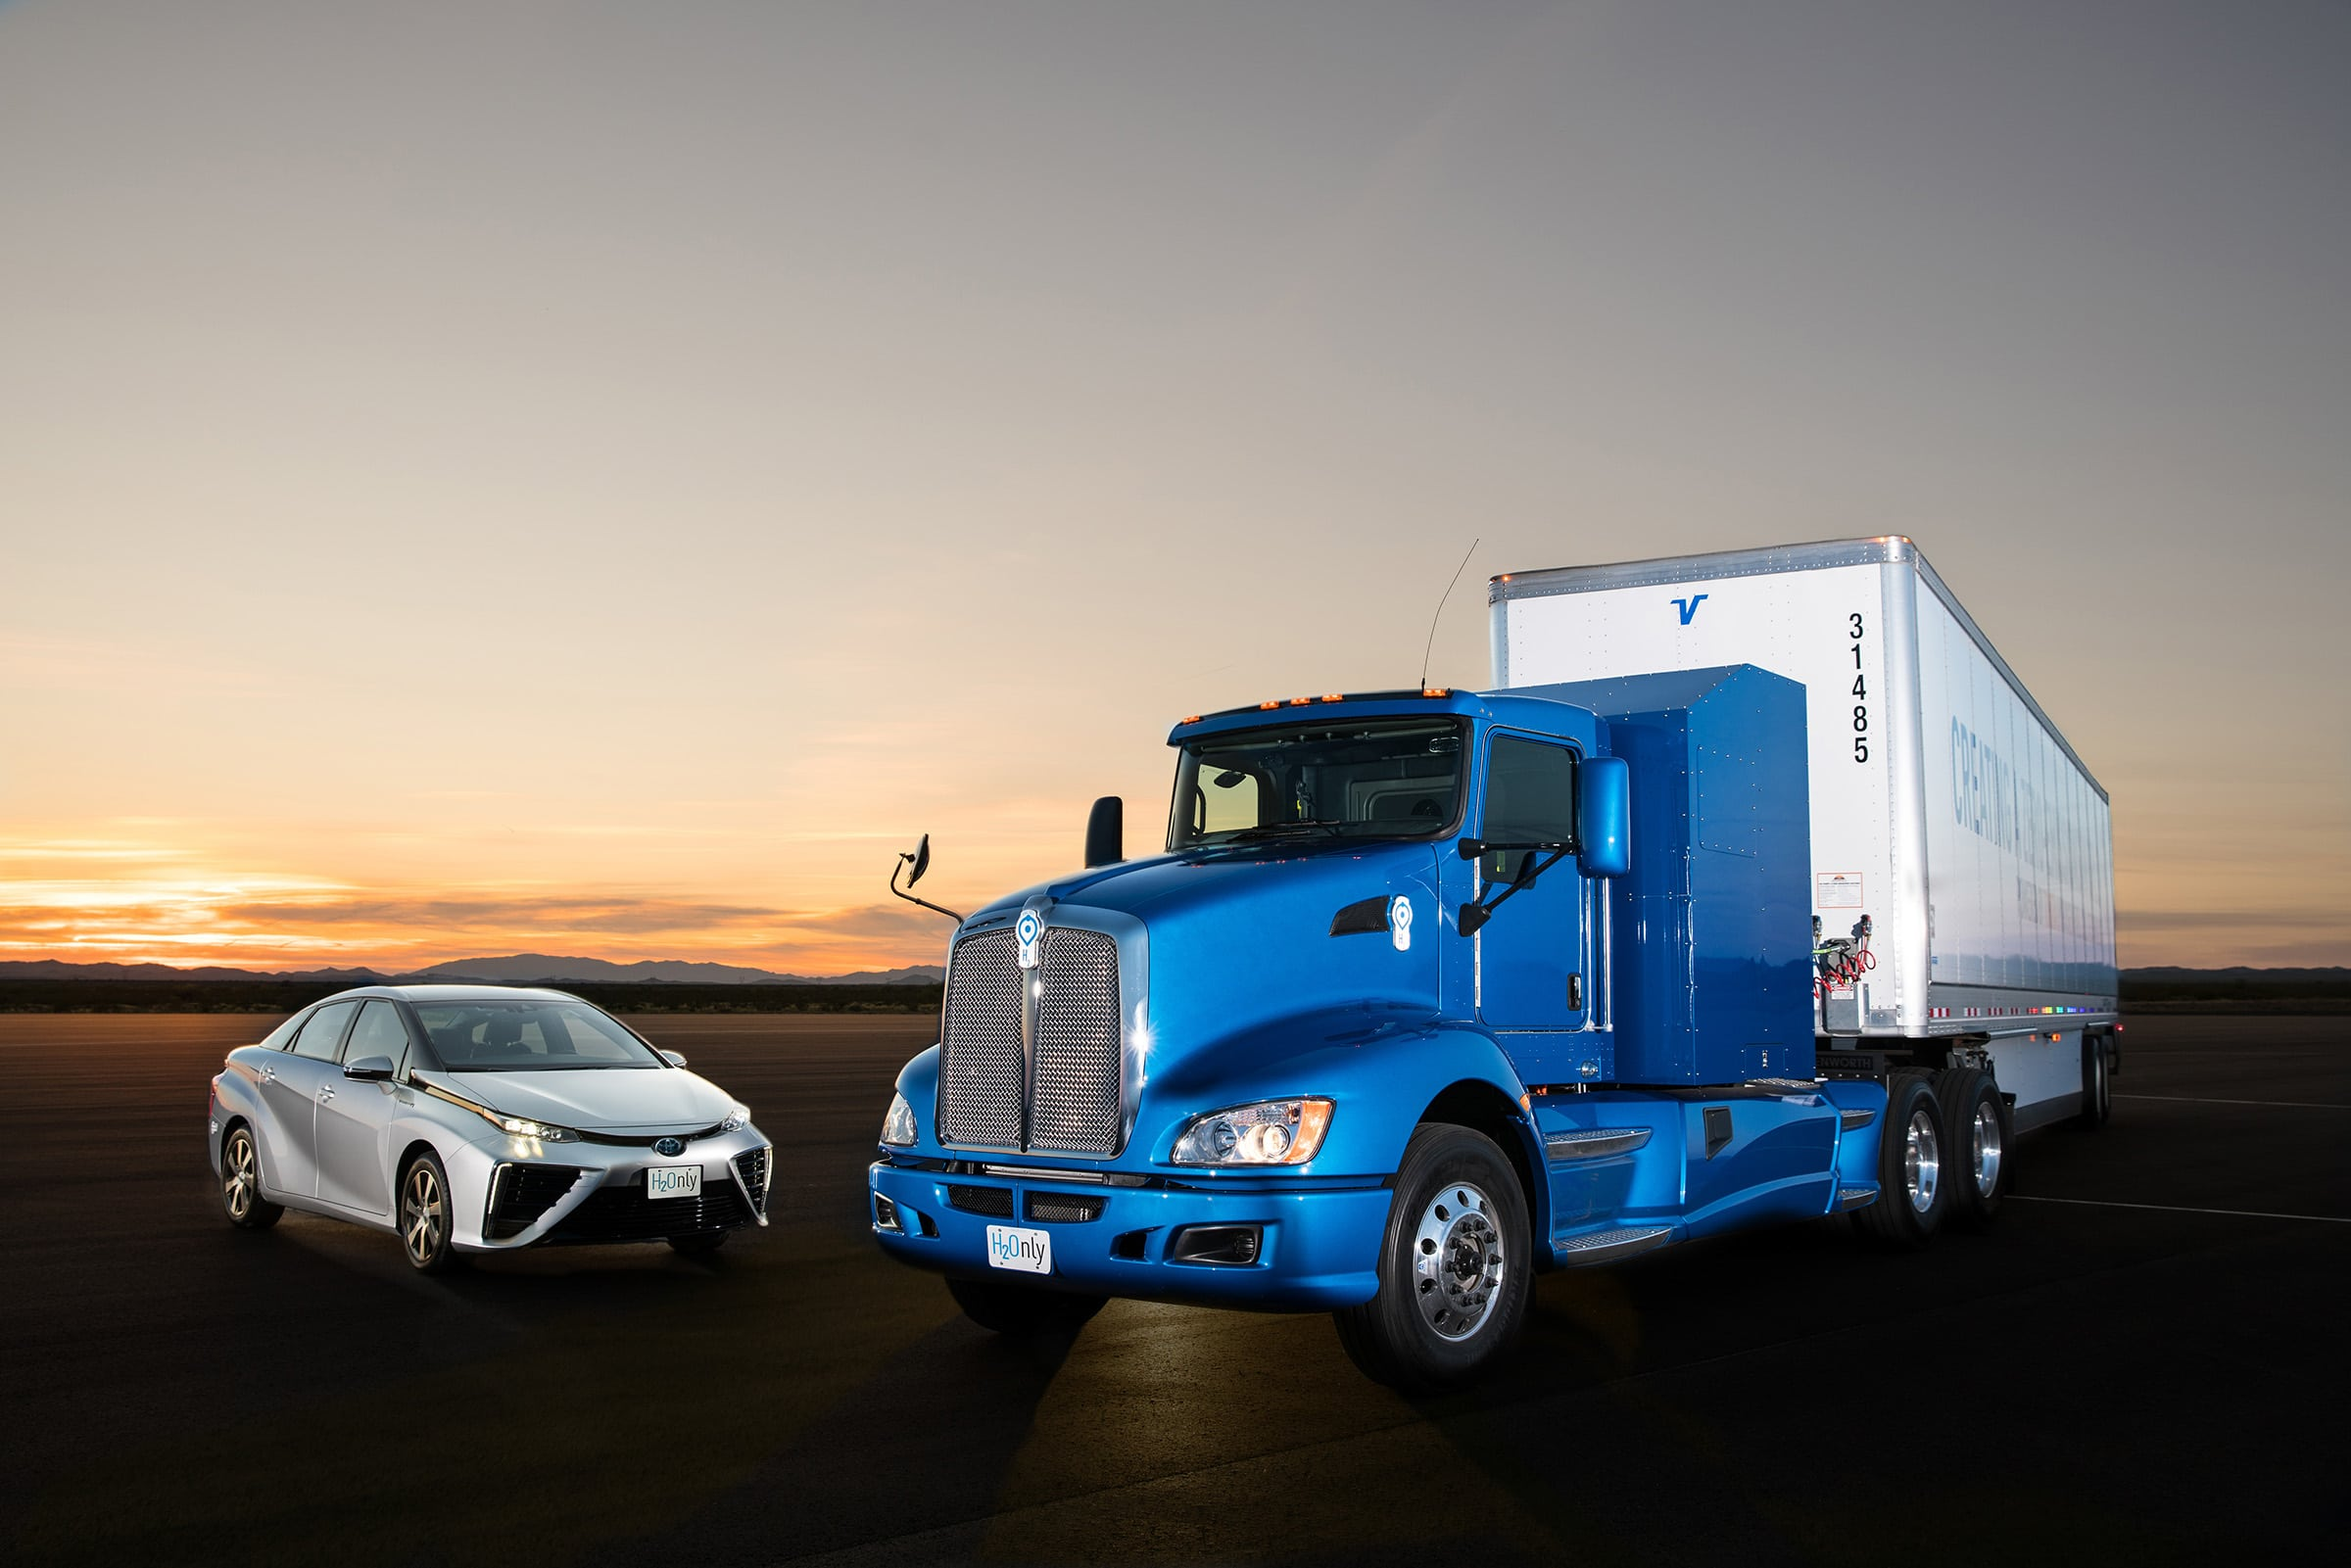 Toyota, BMW Get High Marks for Environmental Practices